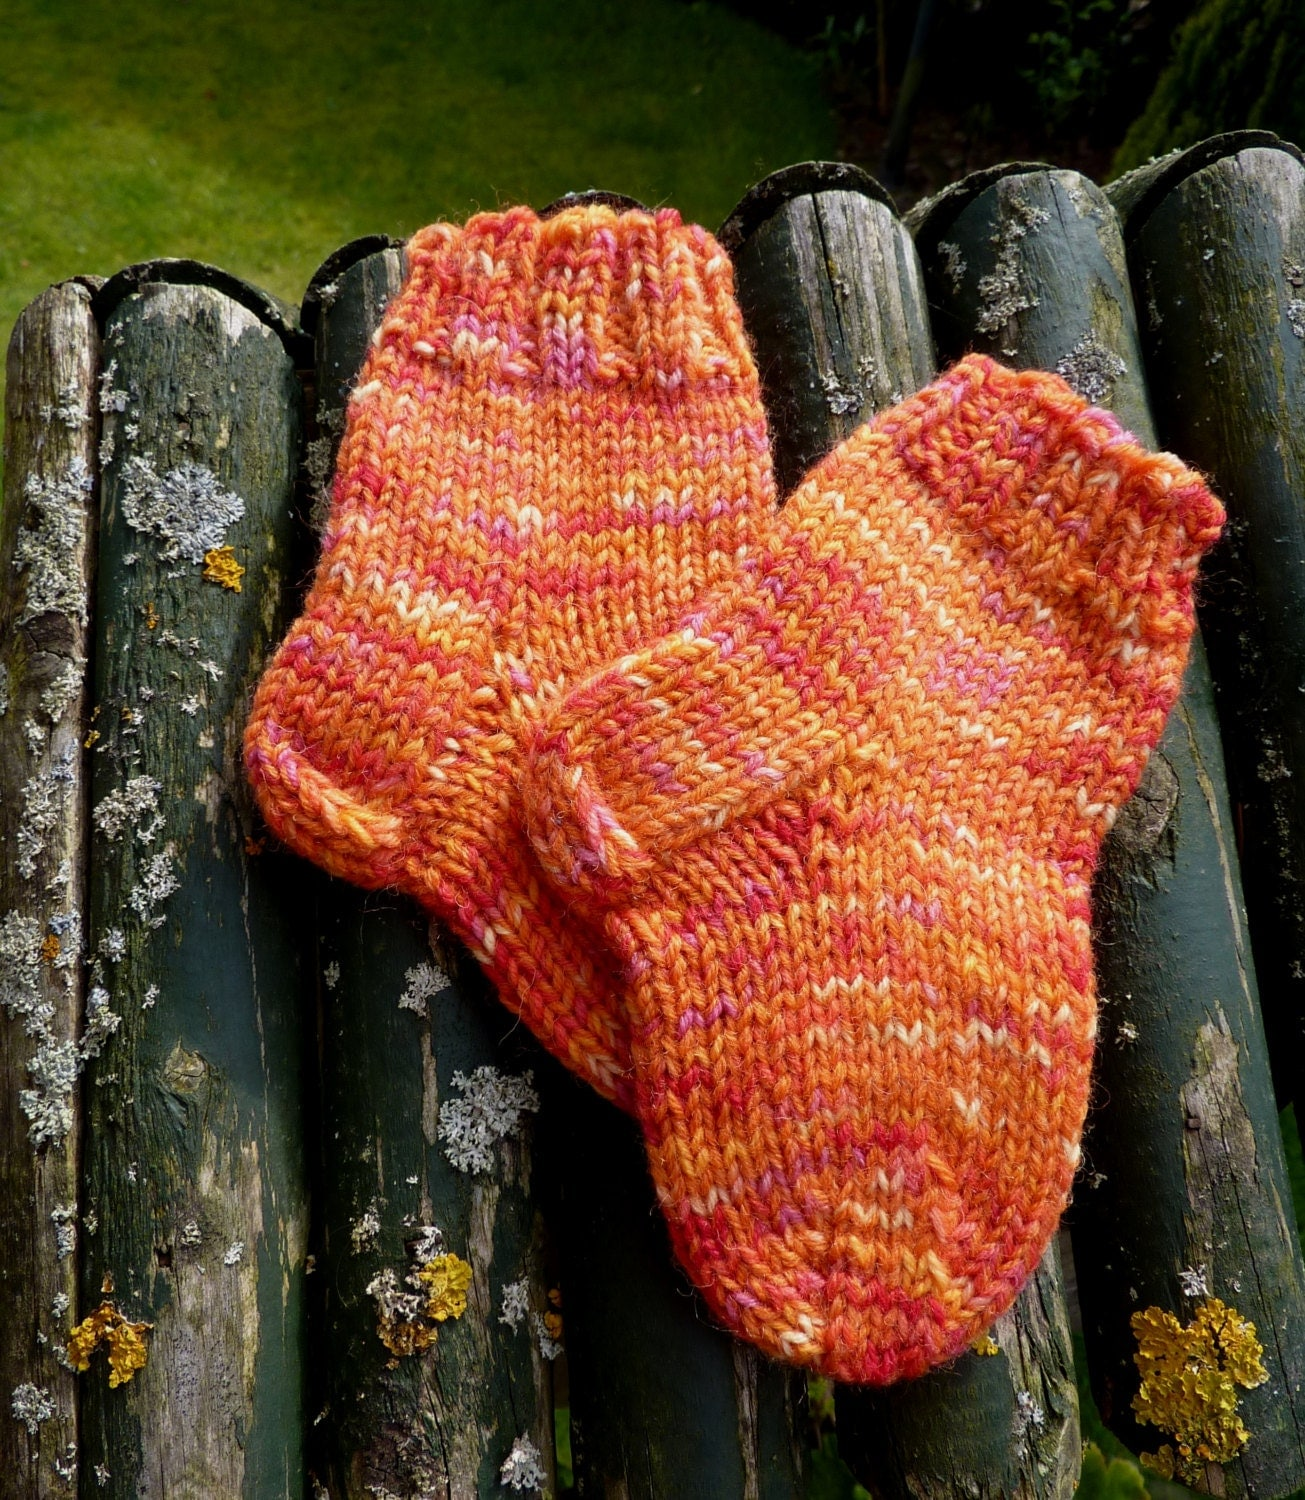 Cute hand knitted baby socks real socks baby red baby socks